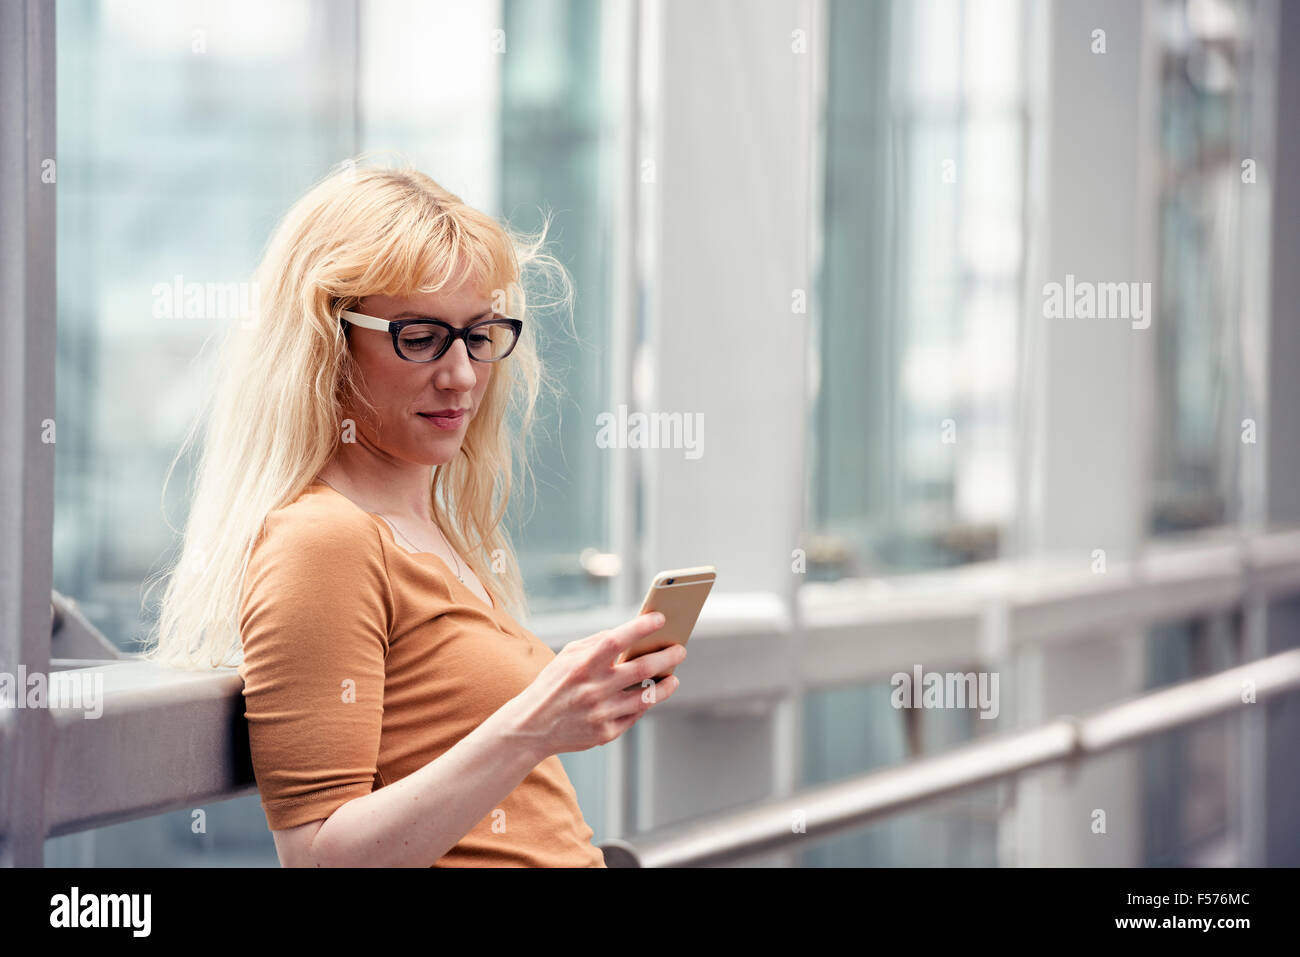 A woman standing outdoors checking her cell phone. - Stock Image